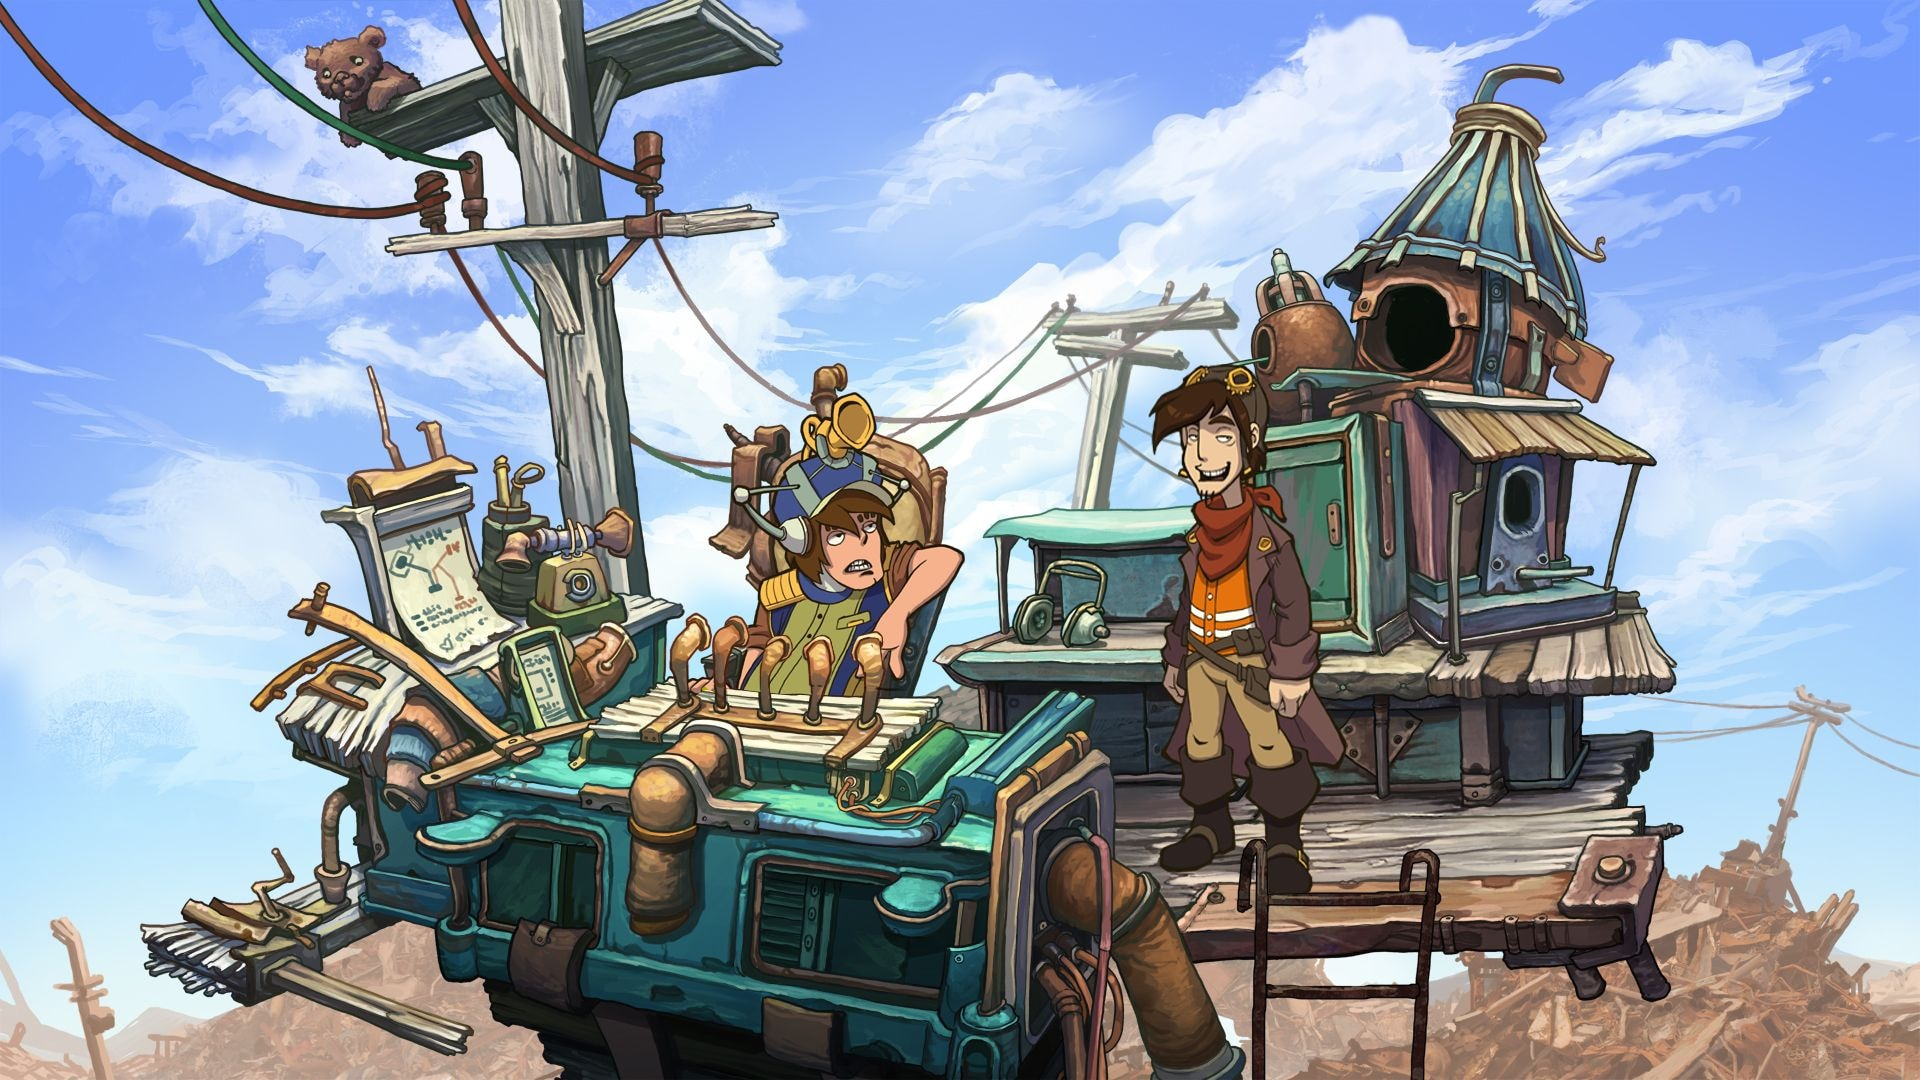 Deponia: The Complete Journey Steam Key GLOBAL - 3